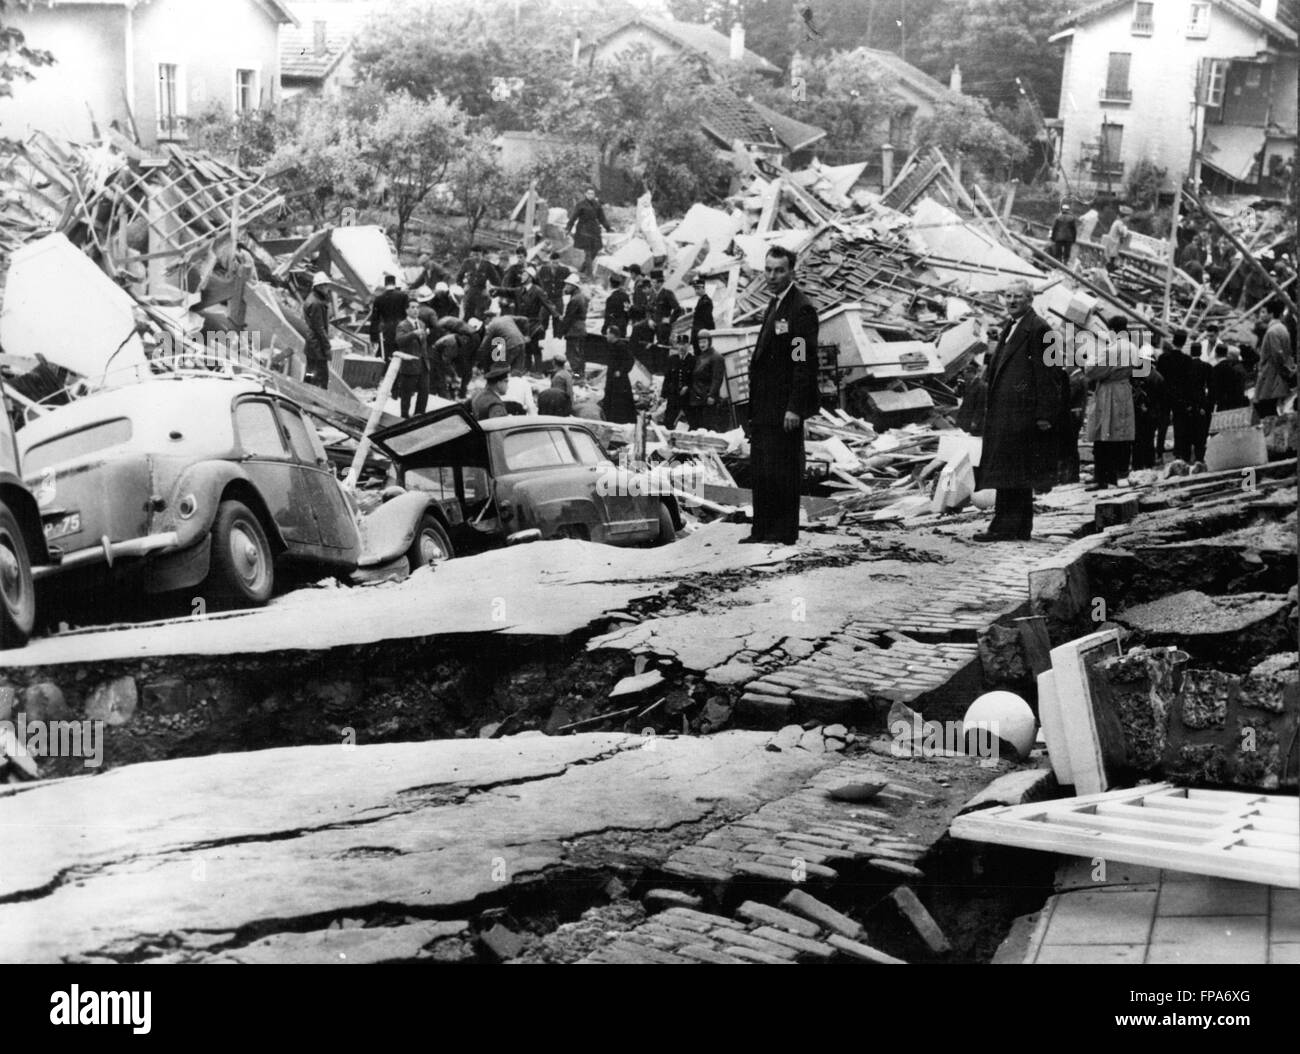 1962 - Seven killed In Landslide In Paris Suburb. Seven people were killed and 23 injured when half a square mile Stock Photo